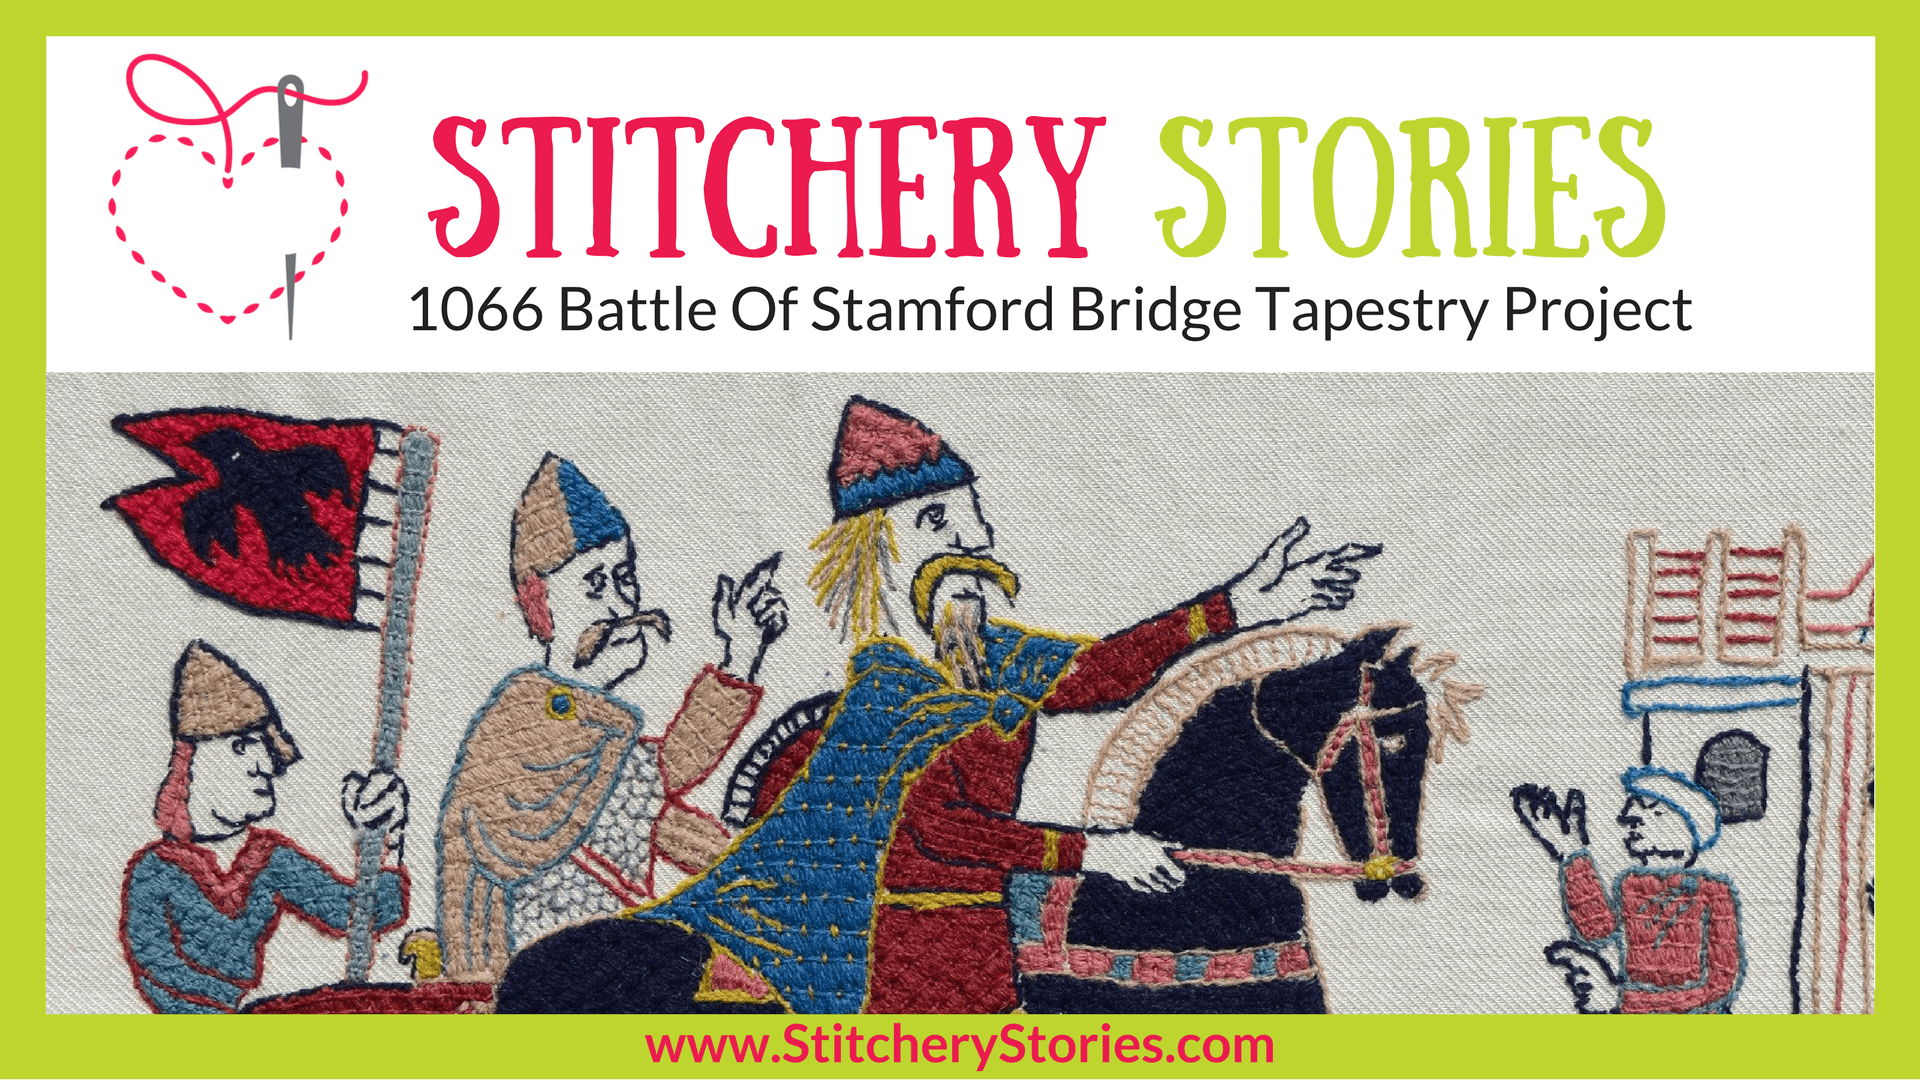 Battle Of Stamford Bridge Tapestry Project Stitchery Stories Podcast Guest